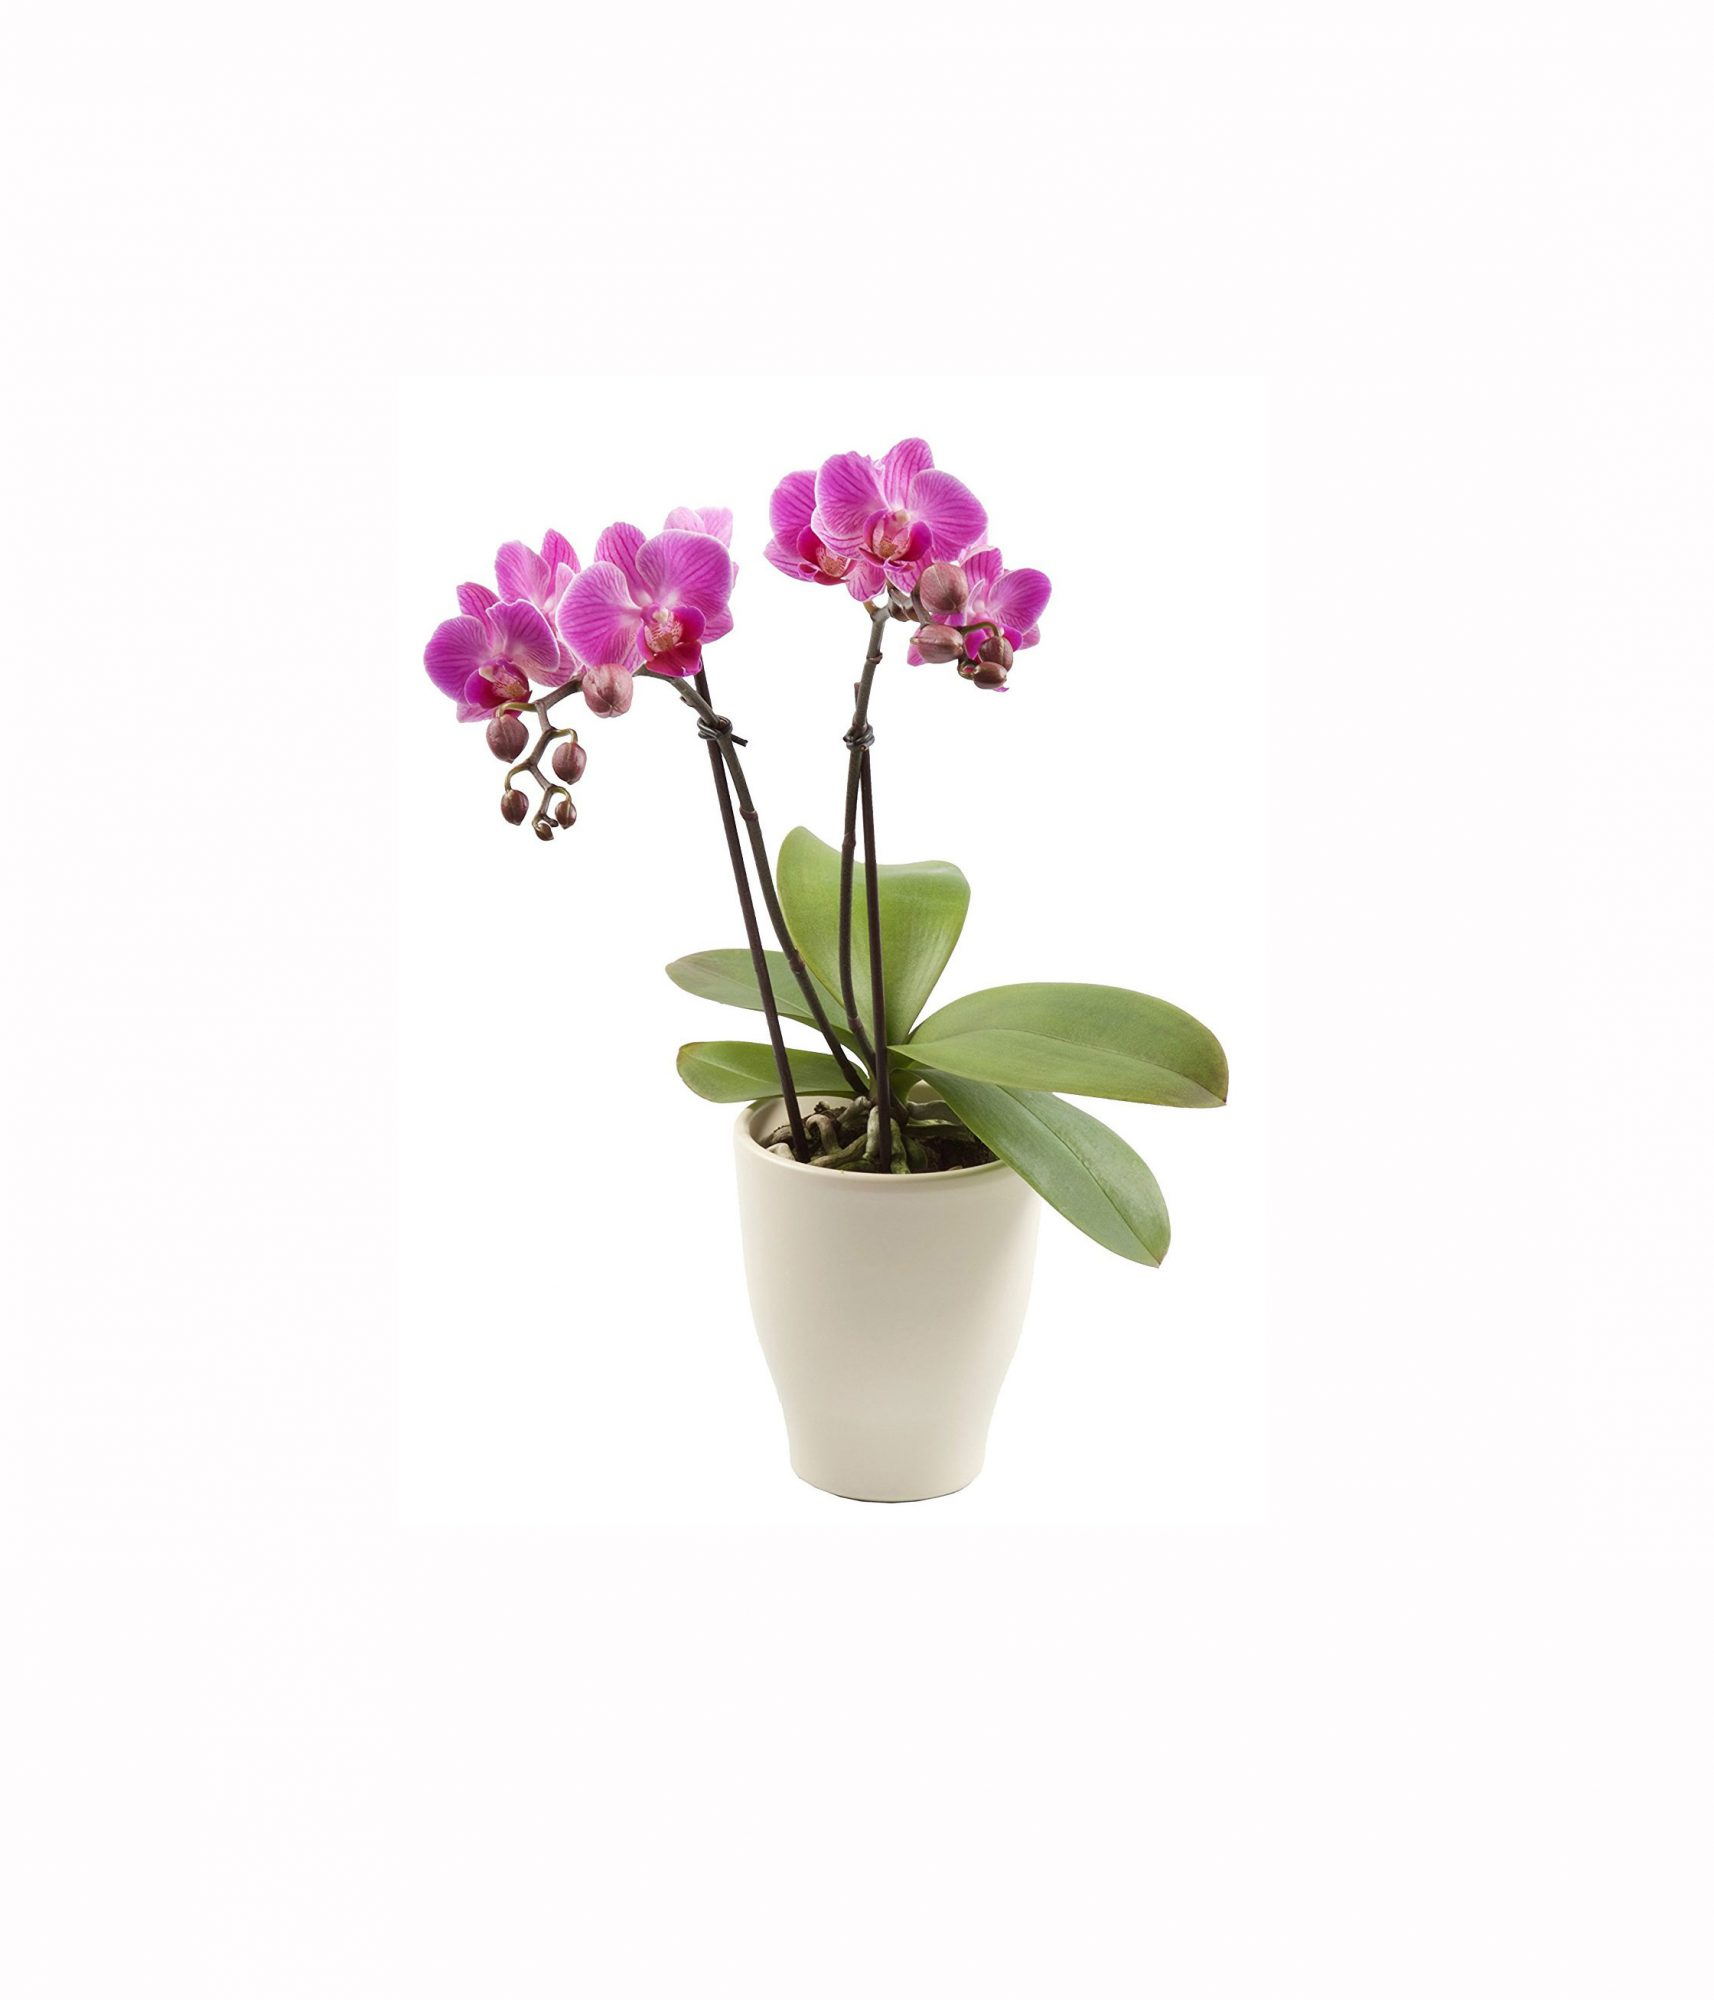 7 House Plants You Can Buy on Amazon Right Now | Real Simple on orchid house paint, orchid photography, orchid plant food, bamboo orchid plant, caring for your orchid plant, white orchid plant, orchid garden, orchid mall plant, orchid watering, spider orchid plant, orchid bees, orchid nurseries and sales, parts of an orchid plant, orchid roses, orchid potting mix, wild orchid plant, black orchid plant, butterfly orchid plant, orchid in pot, pink orchid plant,